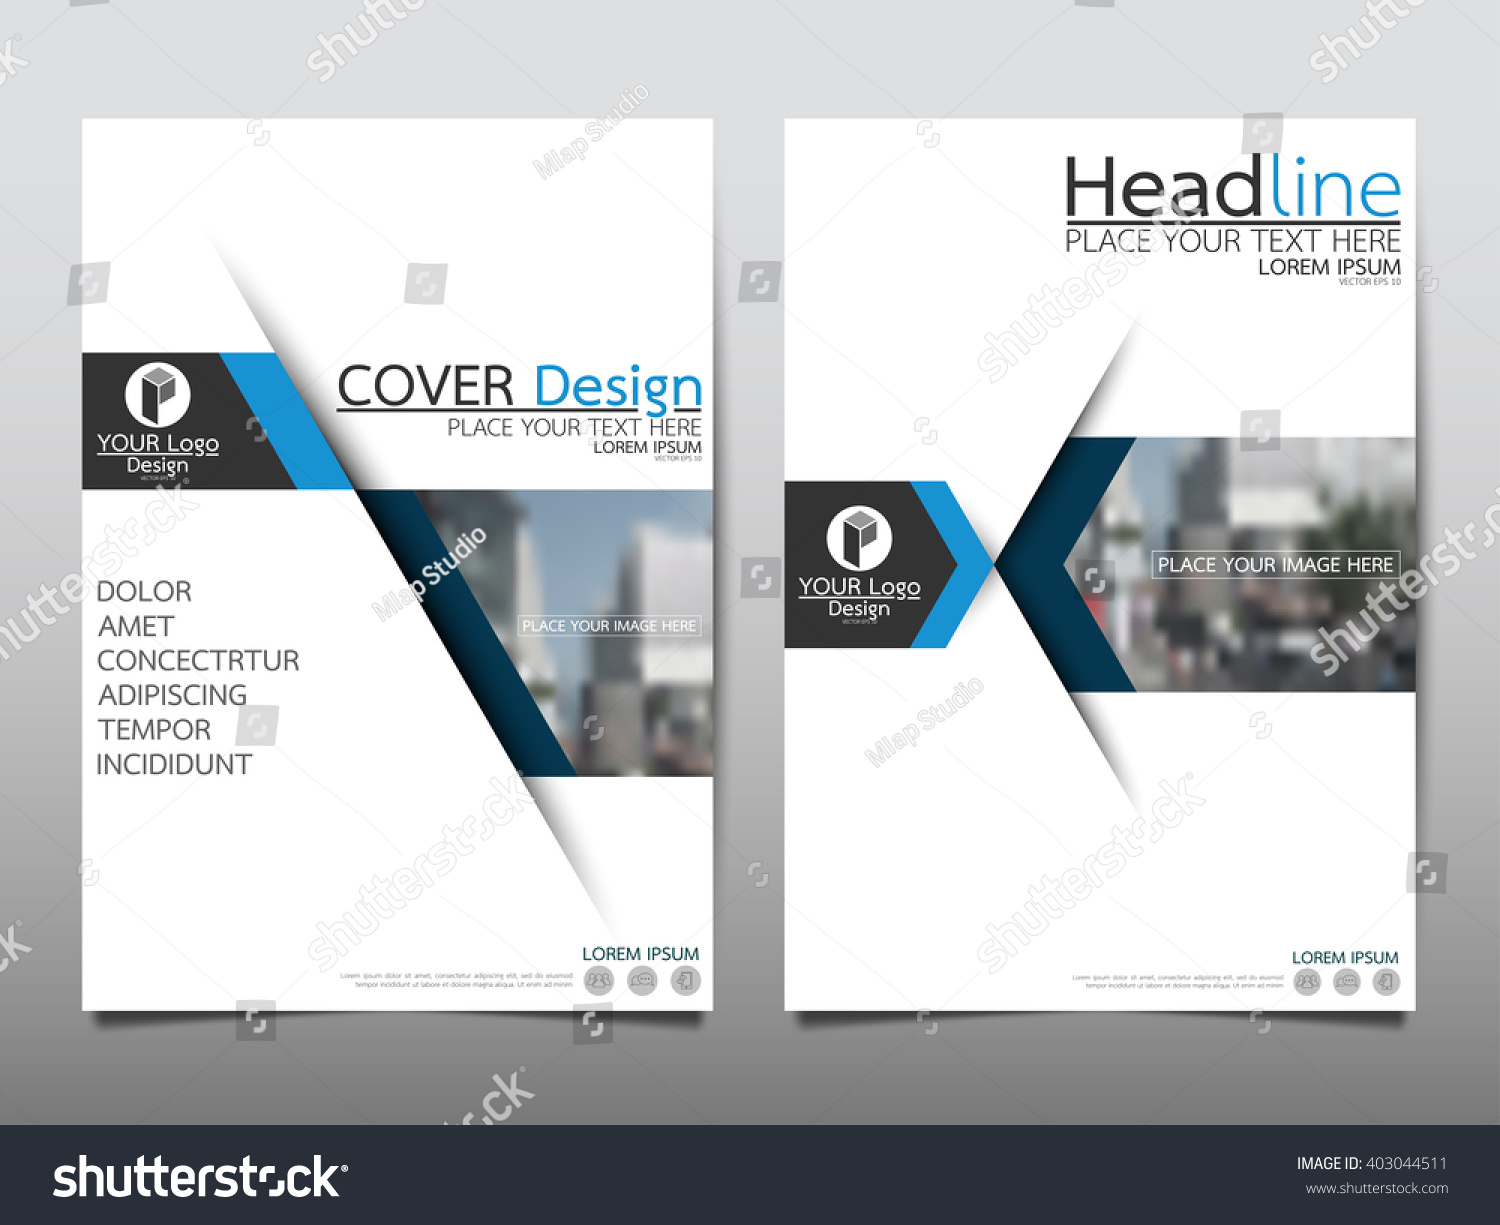 Brochure template layout cover design annual report magazine flyer - Blue Annual Report Brochure Flyer Design Stock Vector